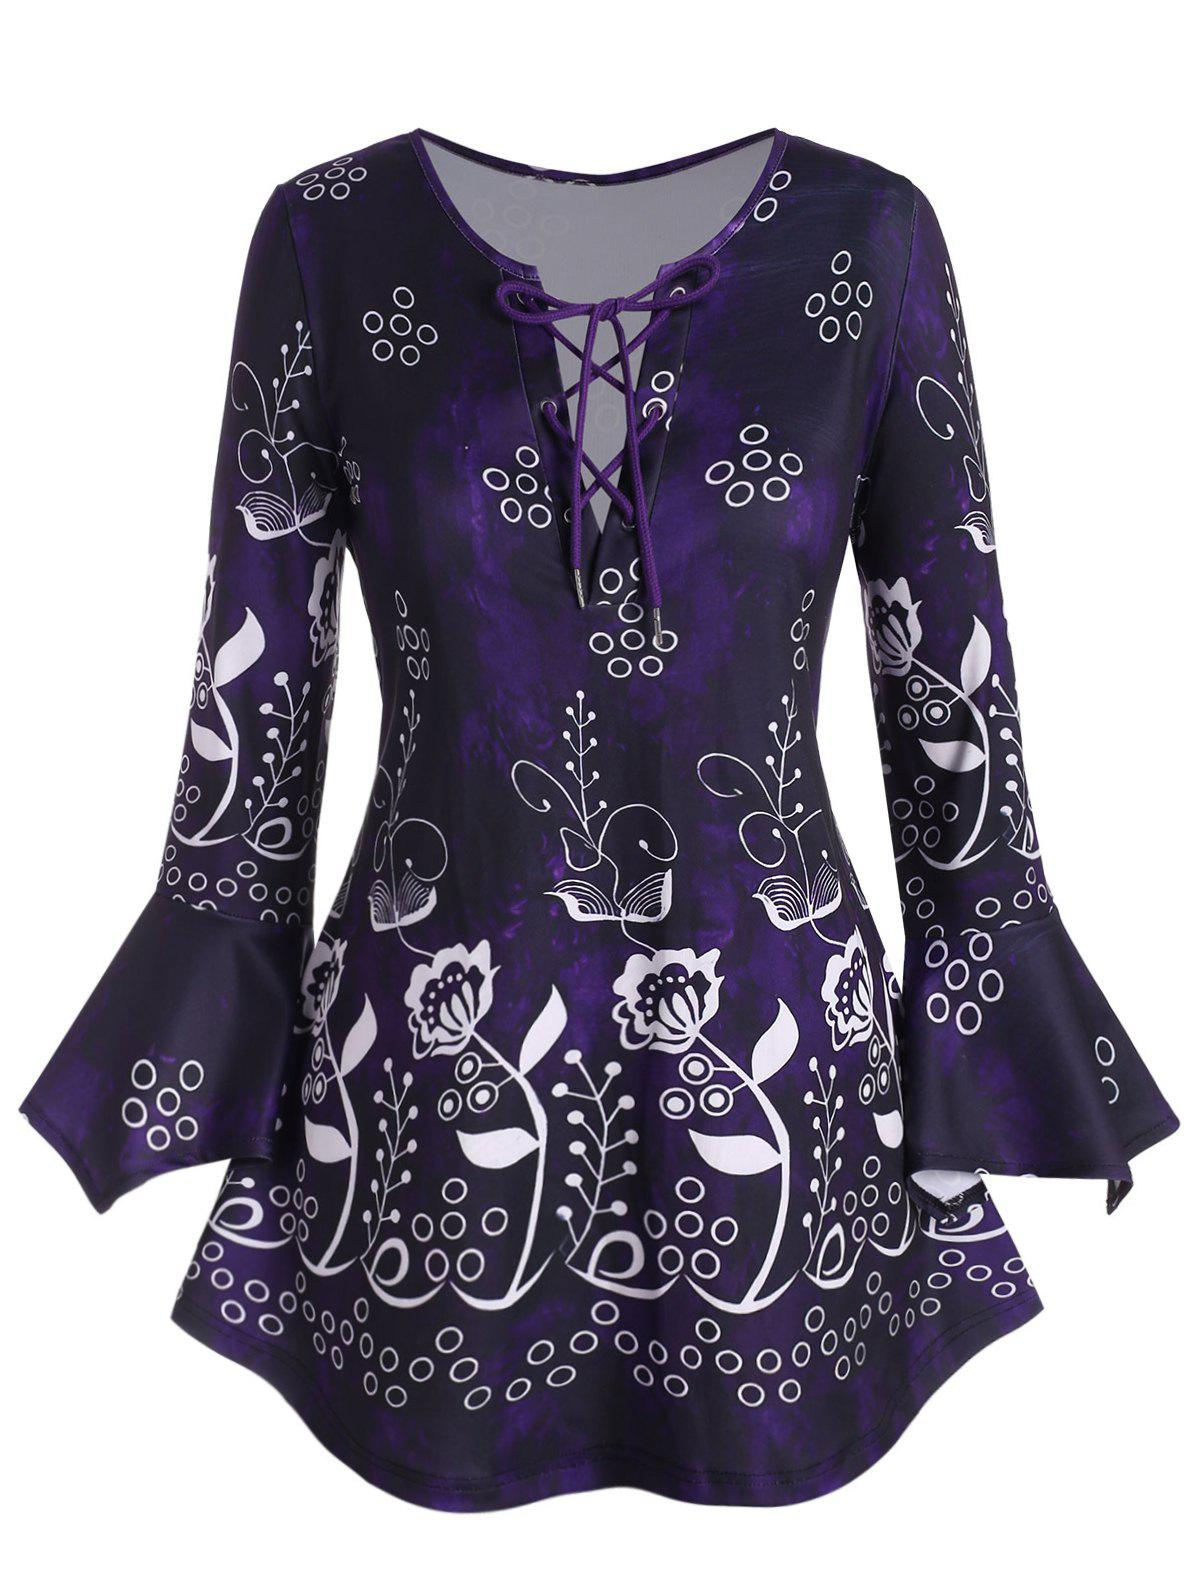 Plus Size Lace Up Floral Print Bell Sleeve T Shirt - PURPLE 5X